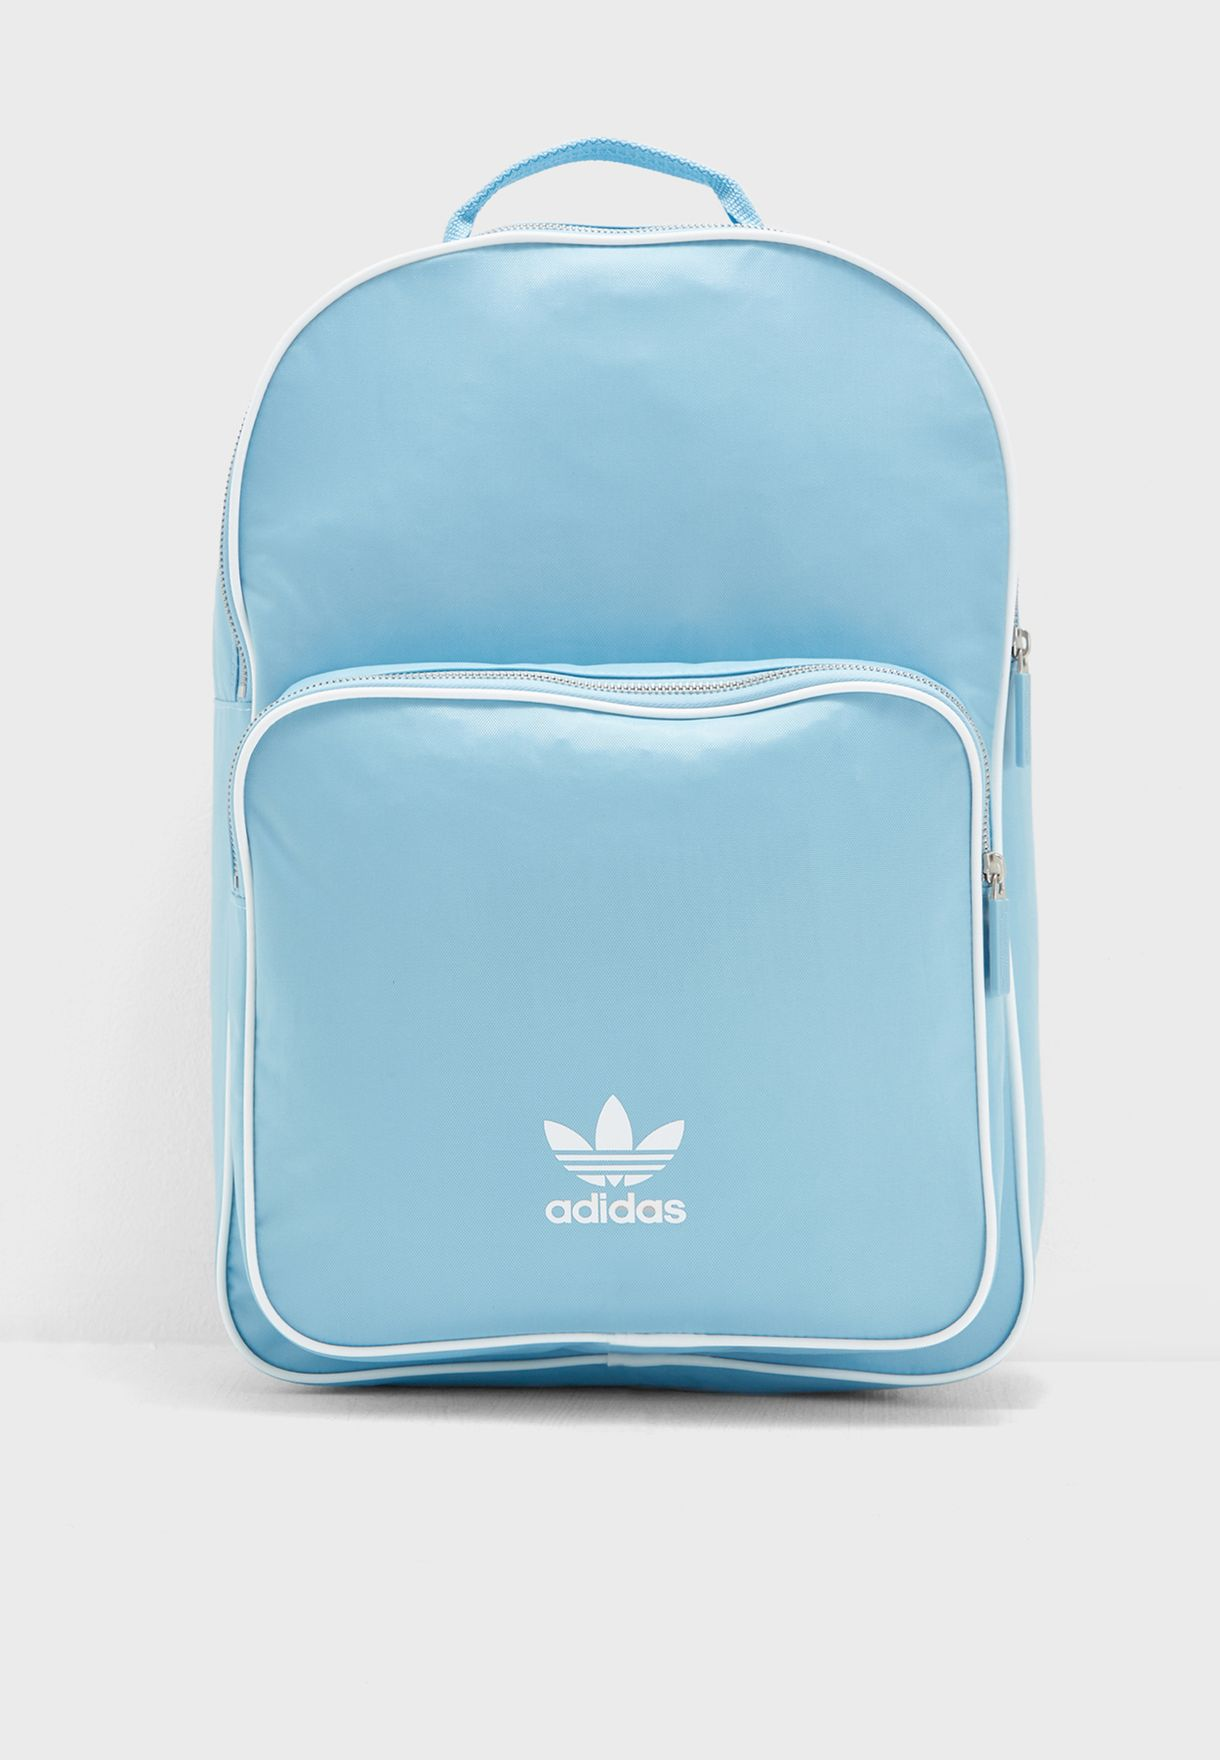 3db8f01cd3d5 Shop adidas Originals blue adicolor Classic Backpack DJ0880 for ...